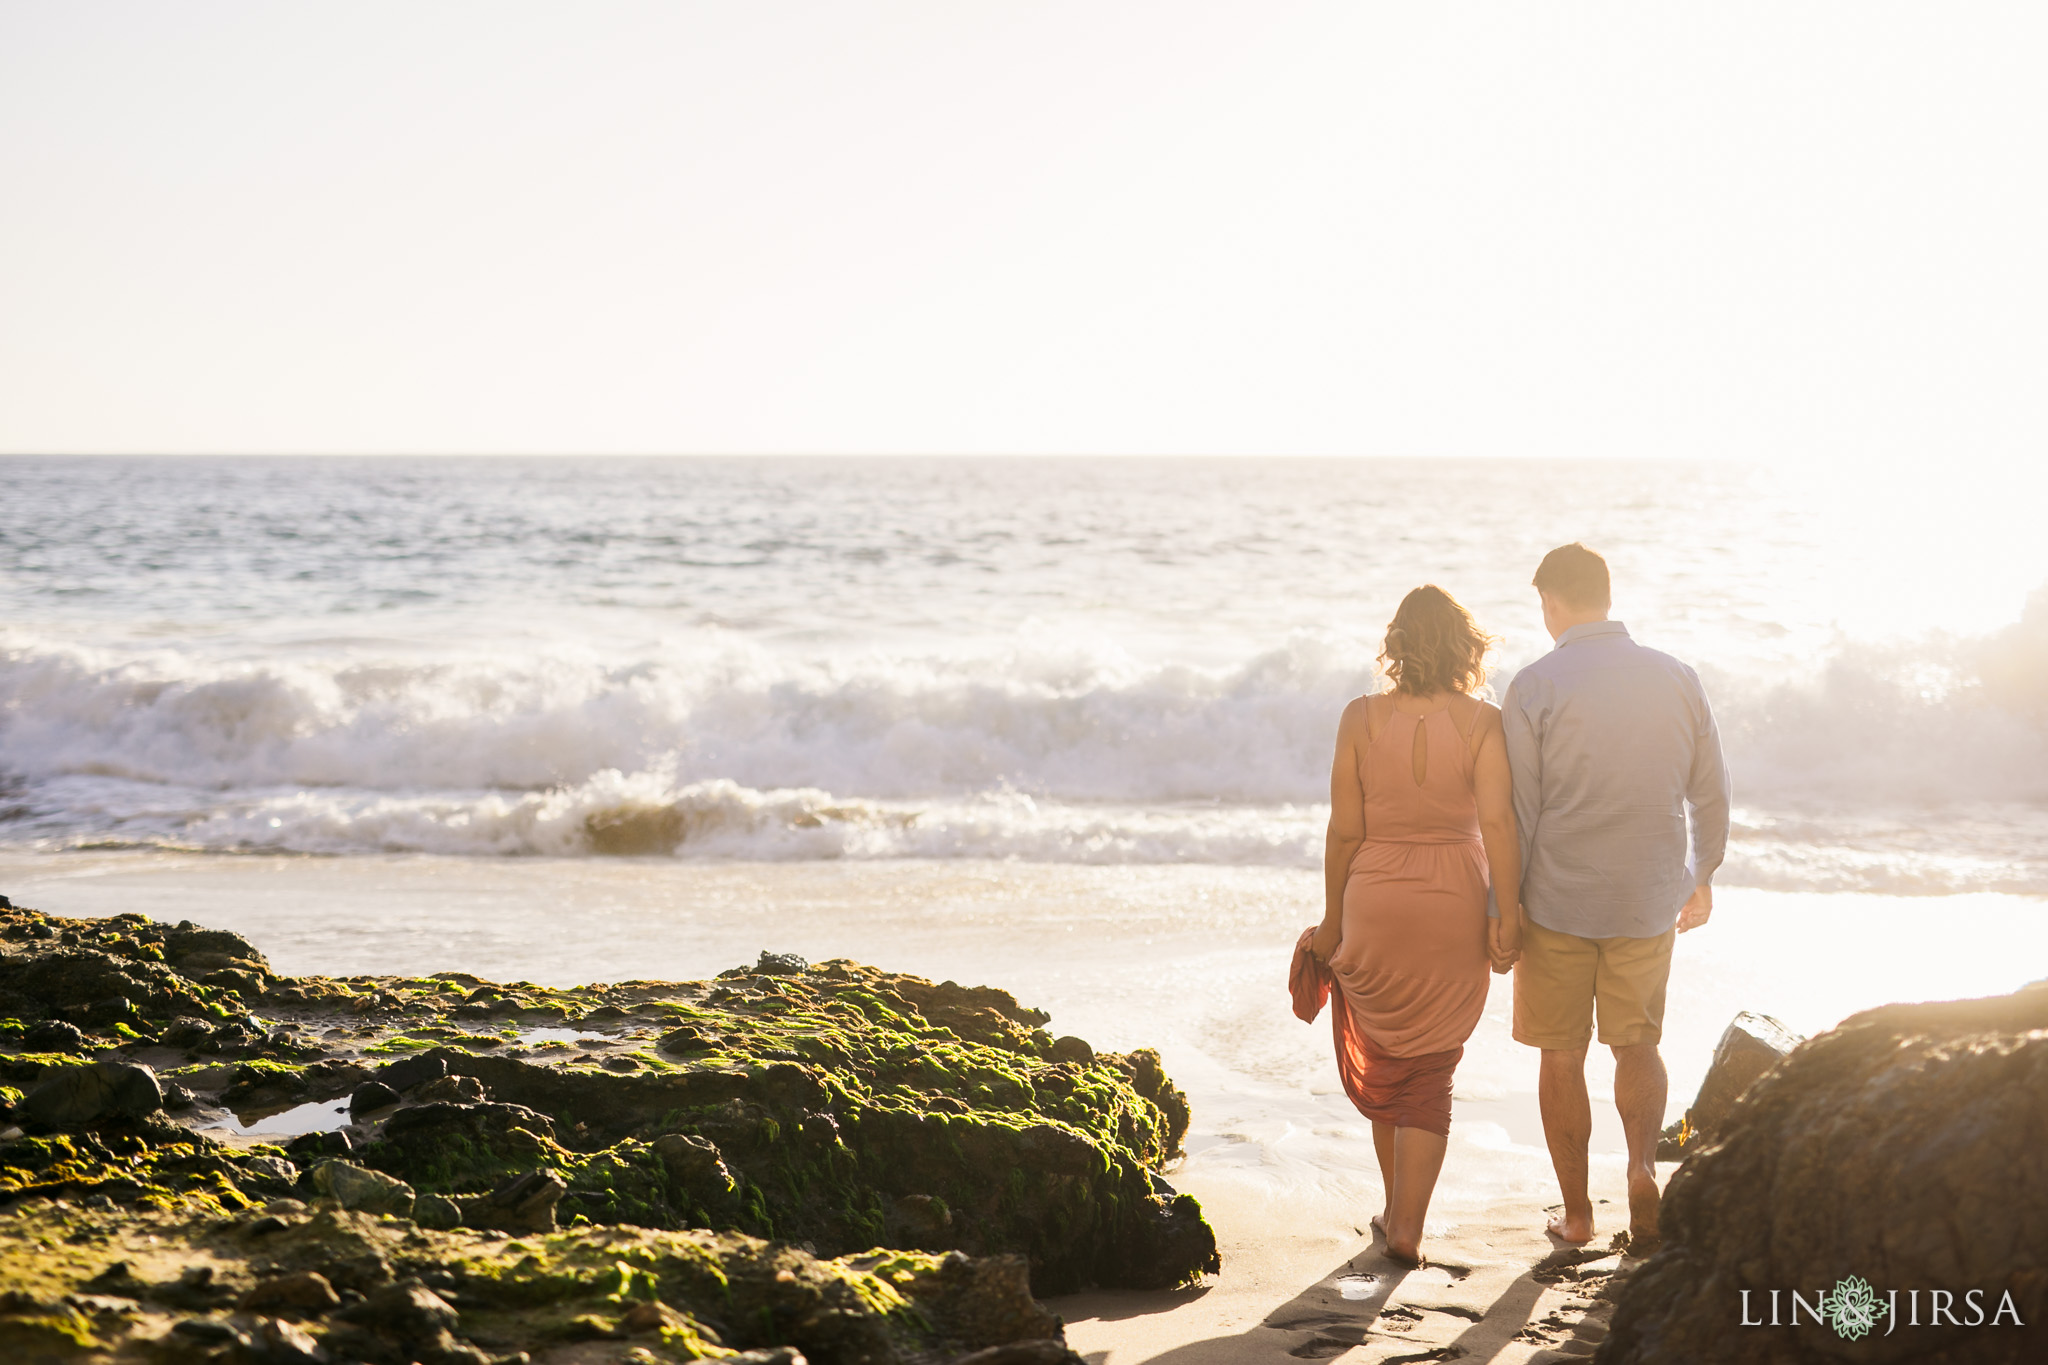 009 laguna beach orange county engagement photography